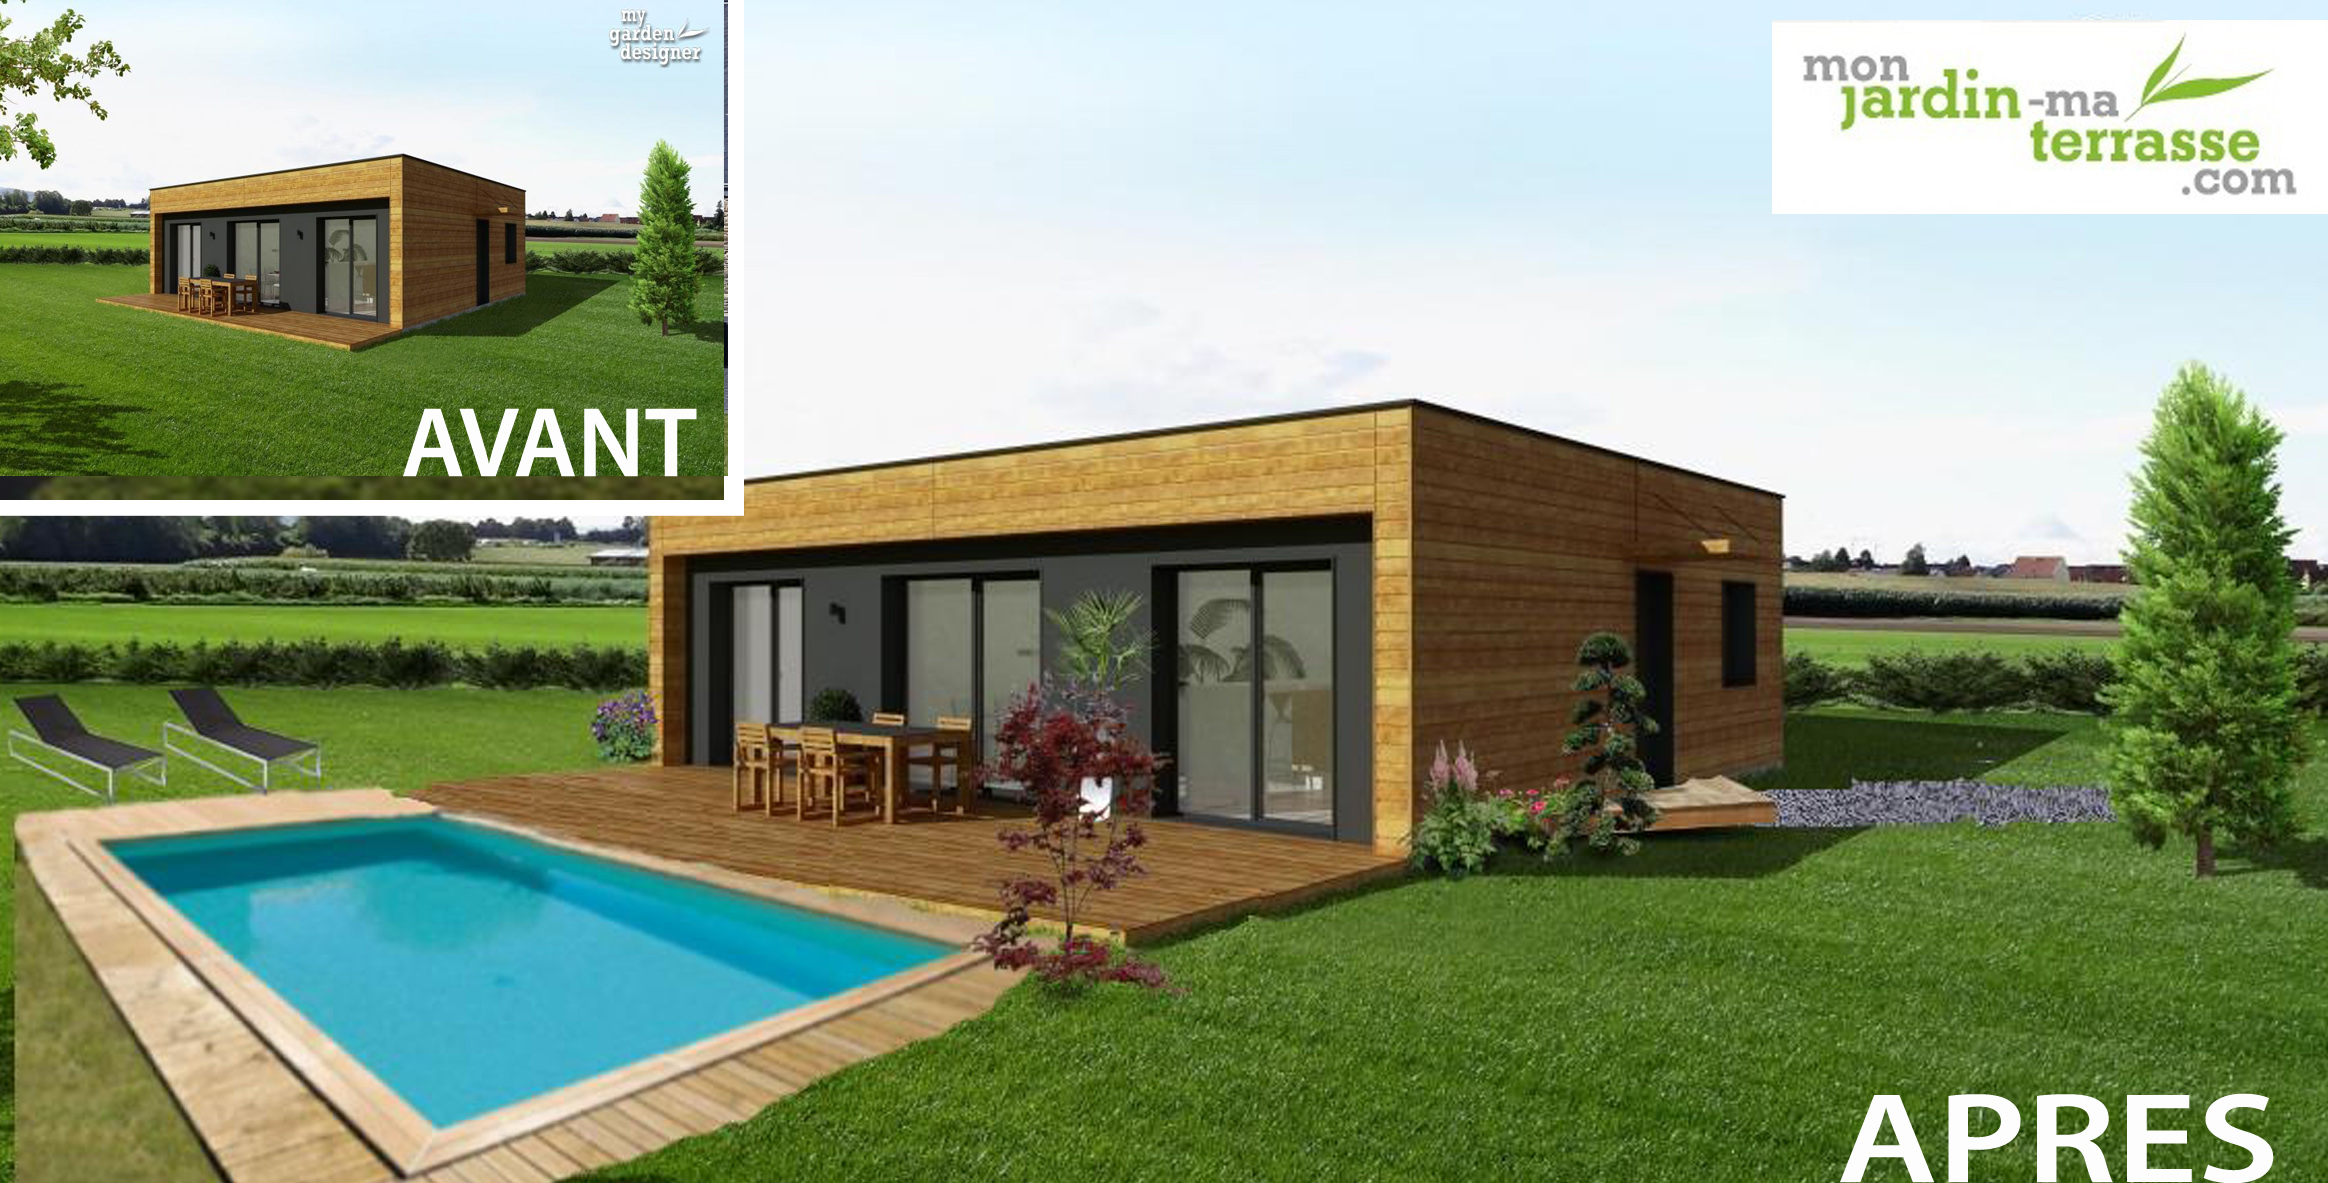 Am nagement ext rieur d une piscine monjardin for Amenagement piscine exterieur